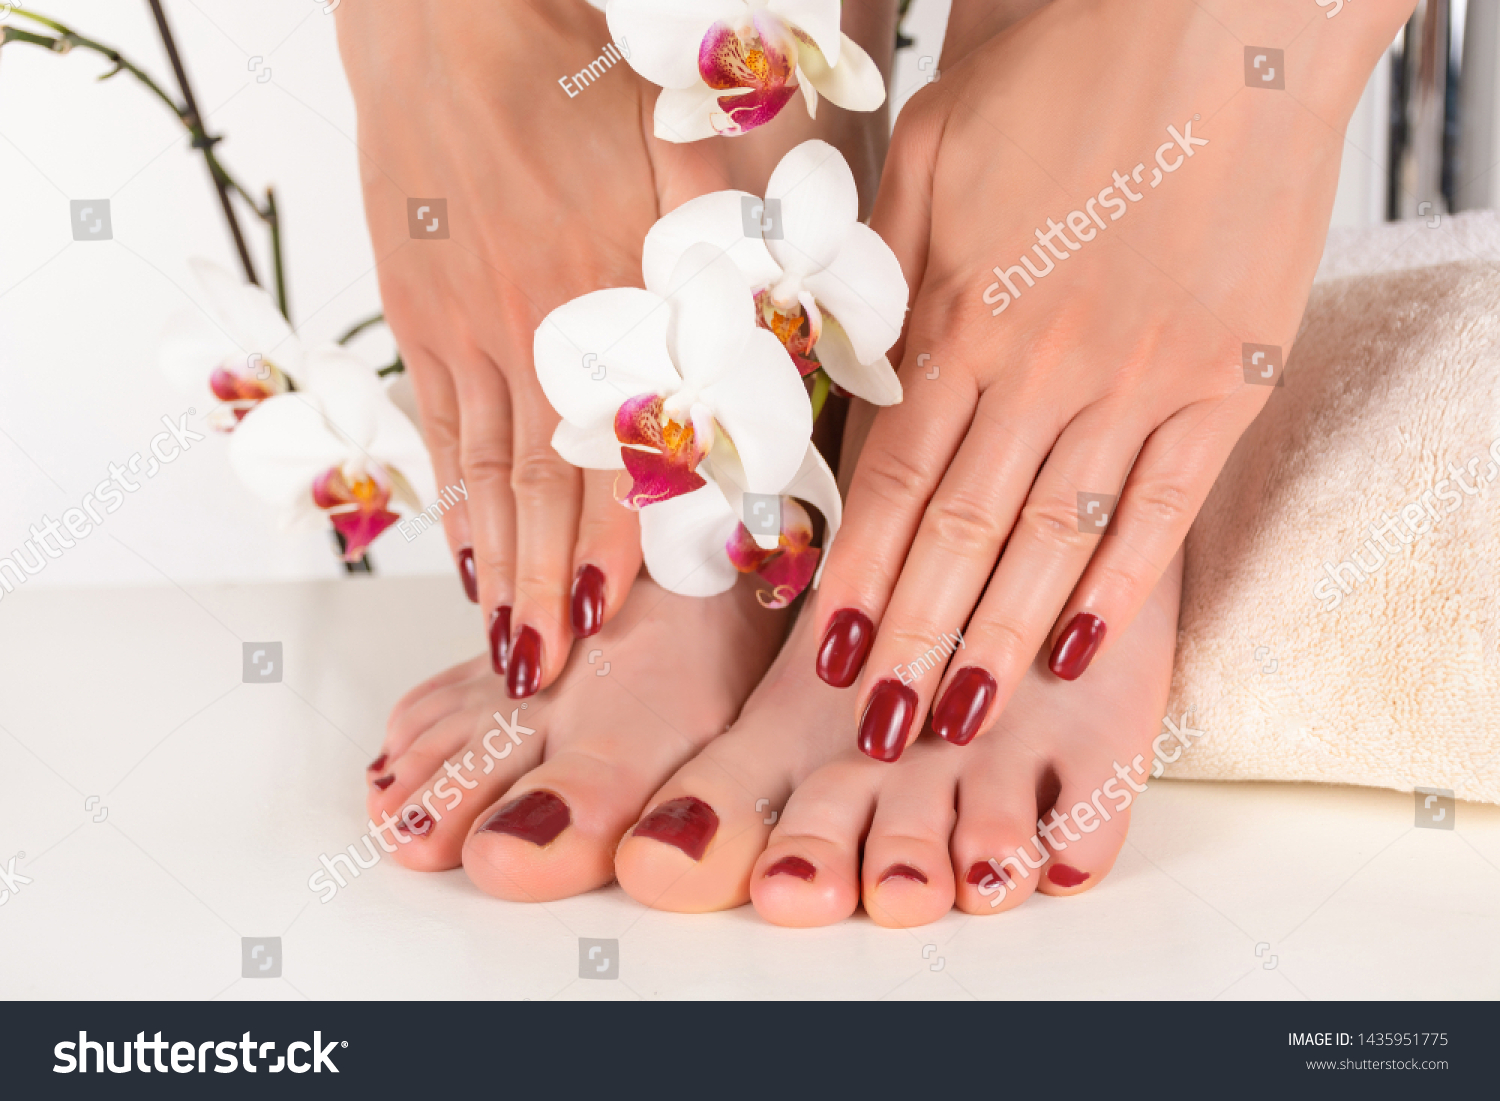 stock-photo-female-feet-and-hands-with-d